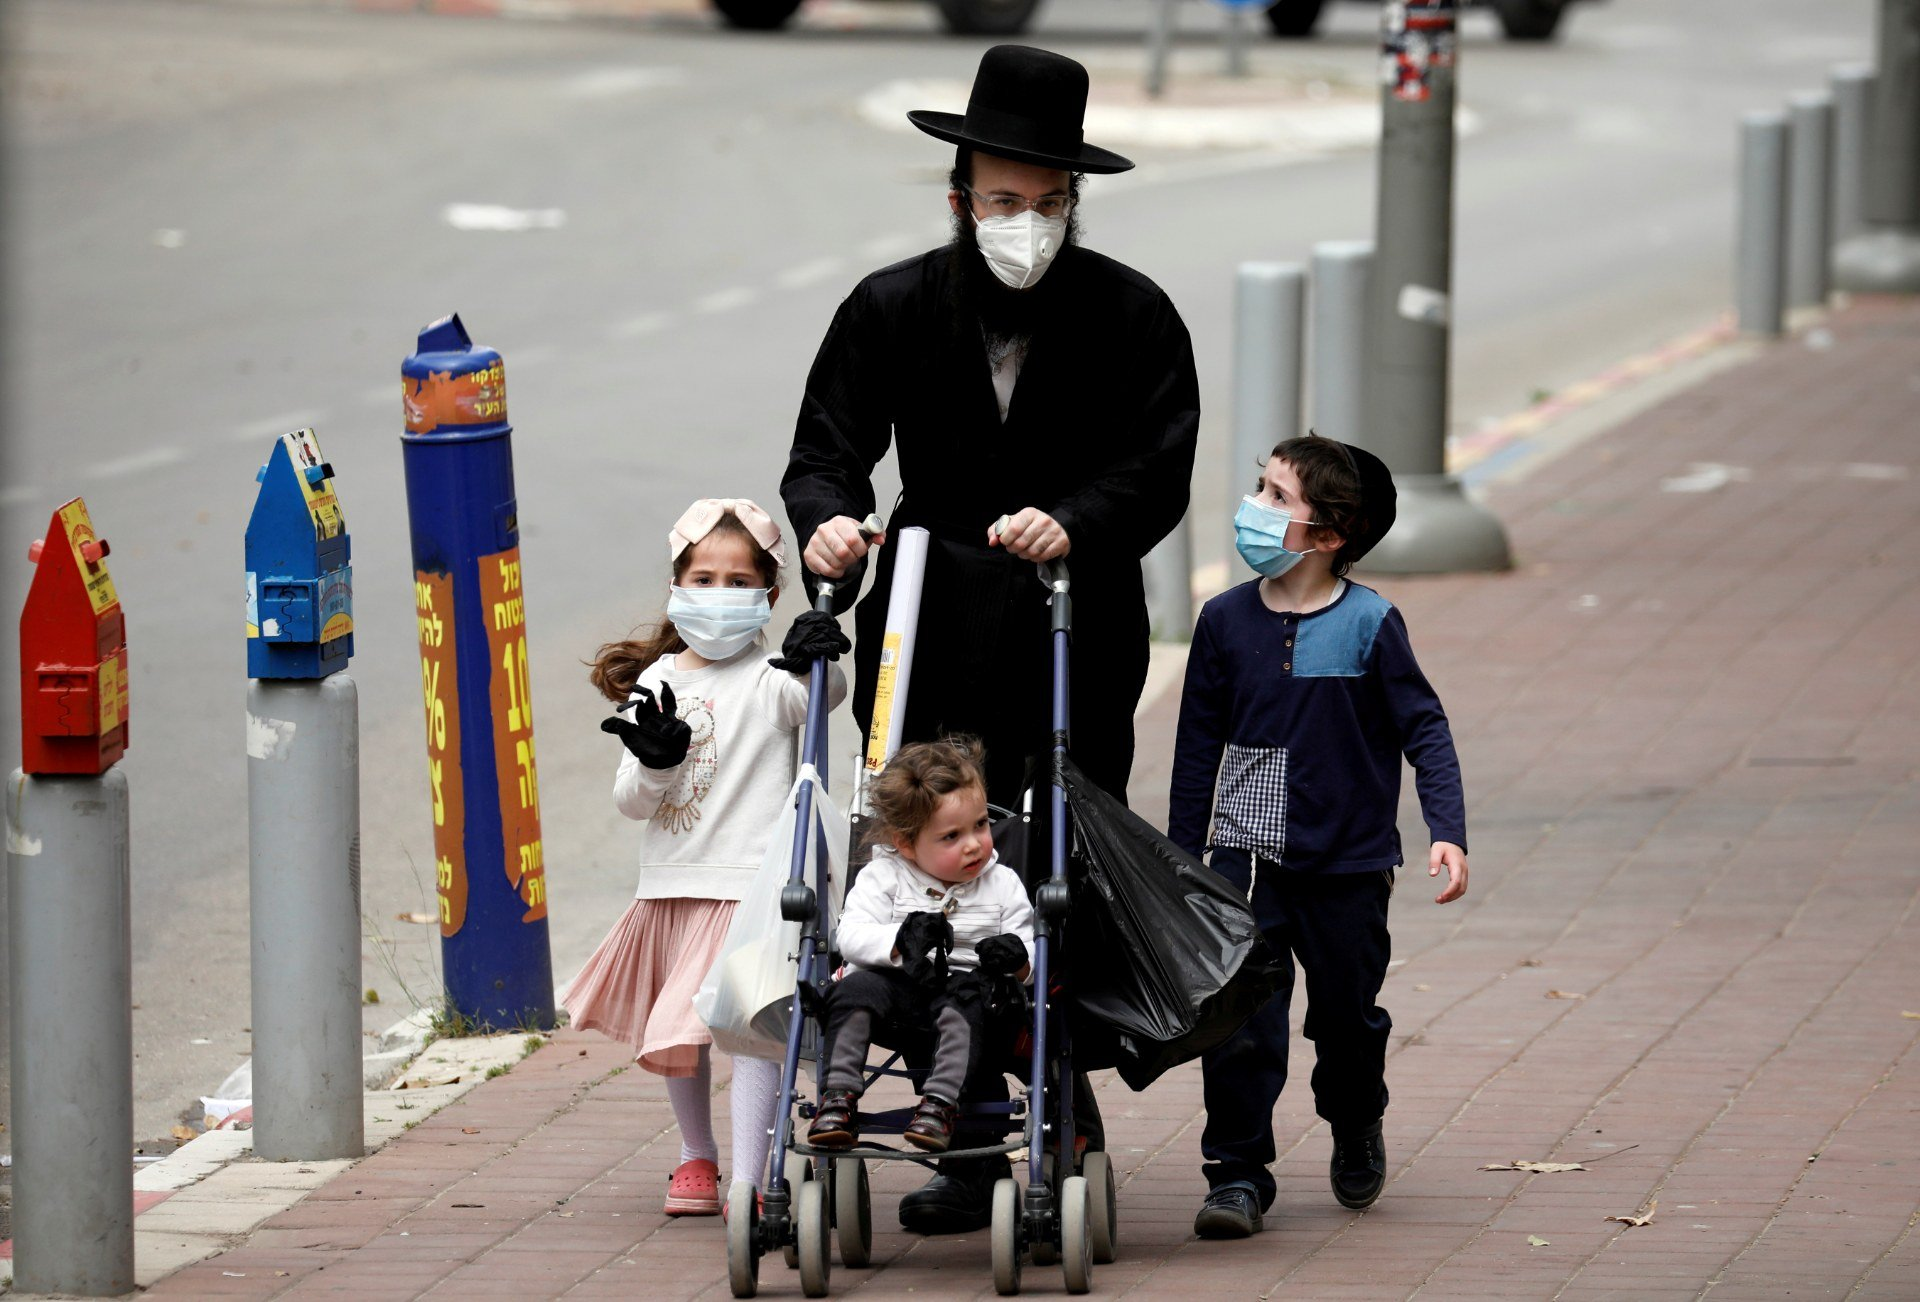 An Ultra-Orthodox Jewish family wearing masks walk on a pavement in Bnei Brak (Reuters)